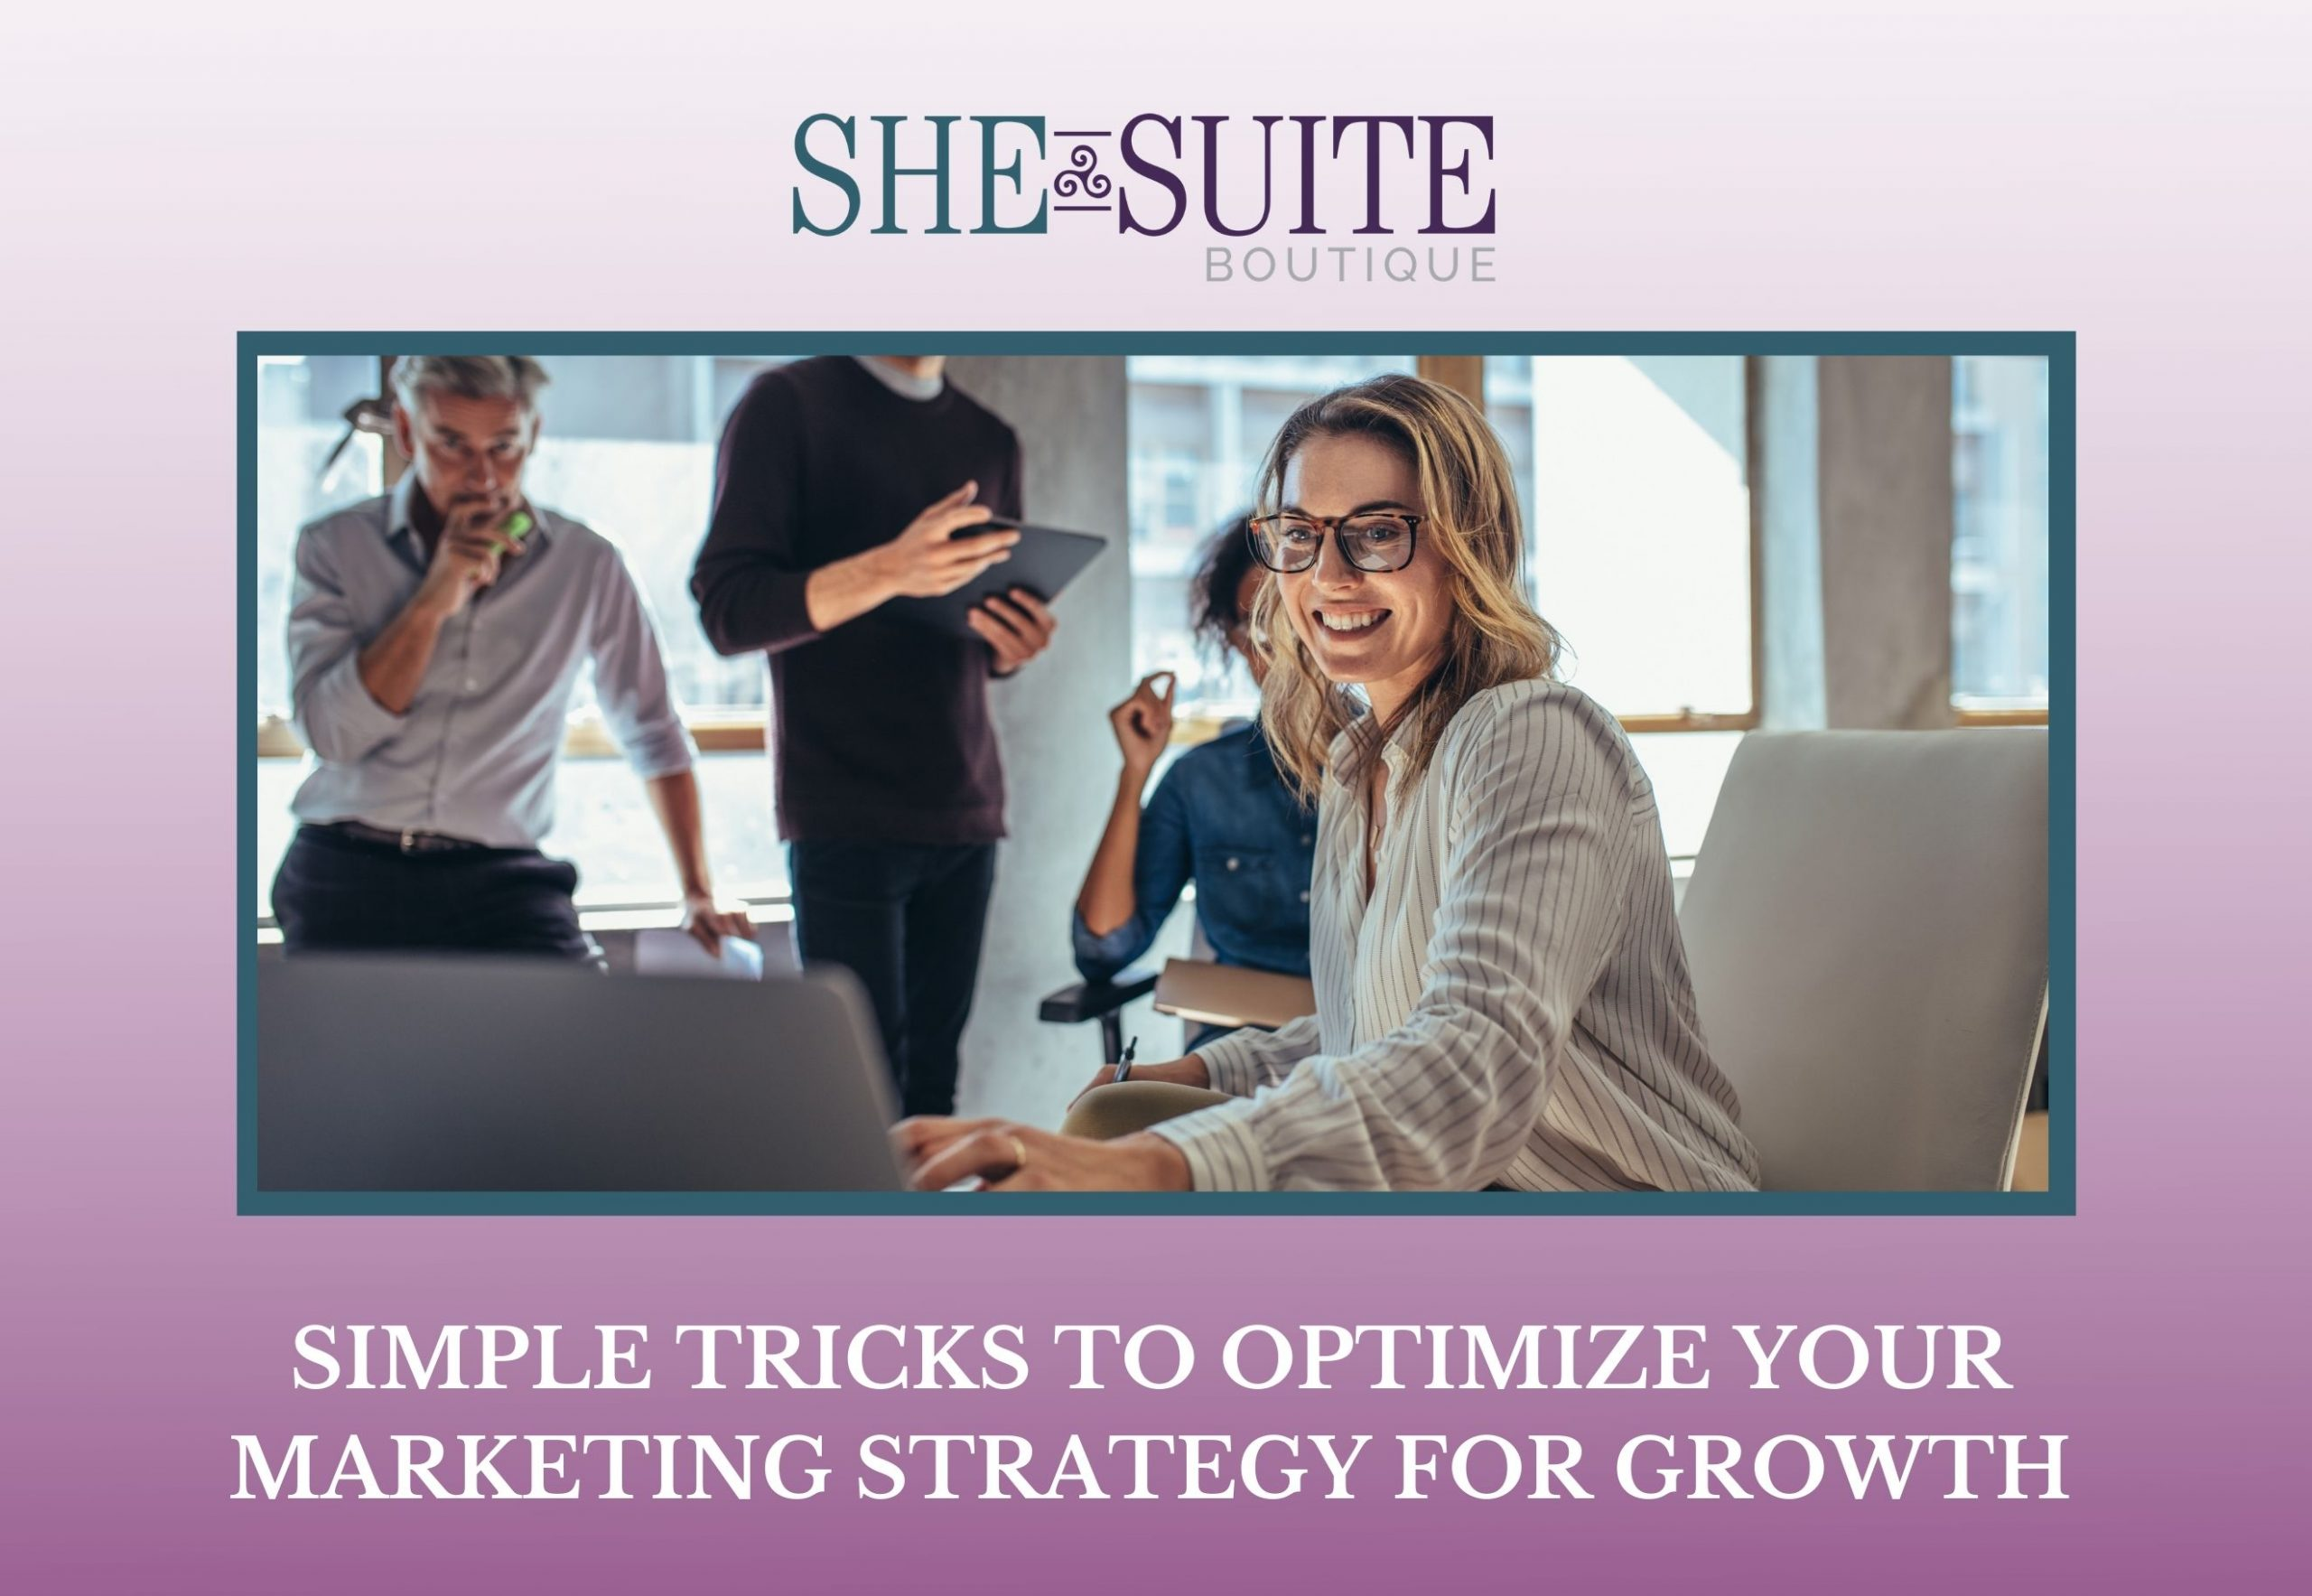 Marketing Strategy For Growth